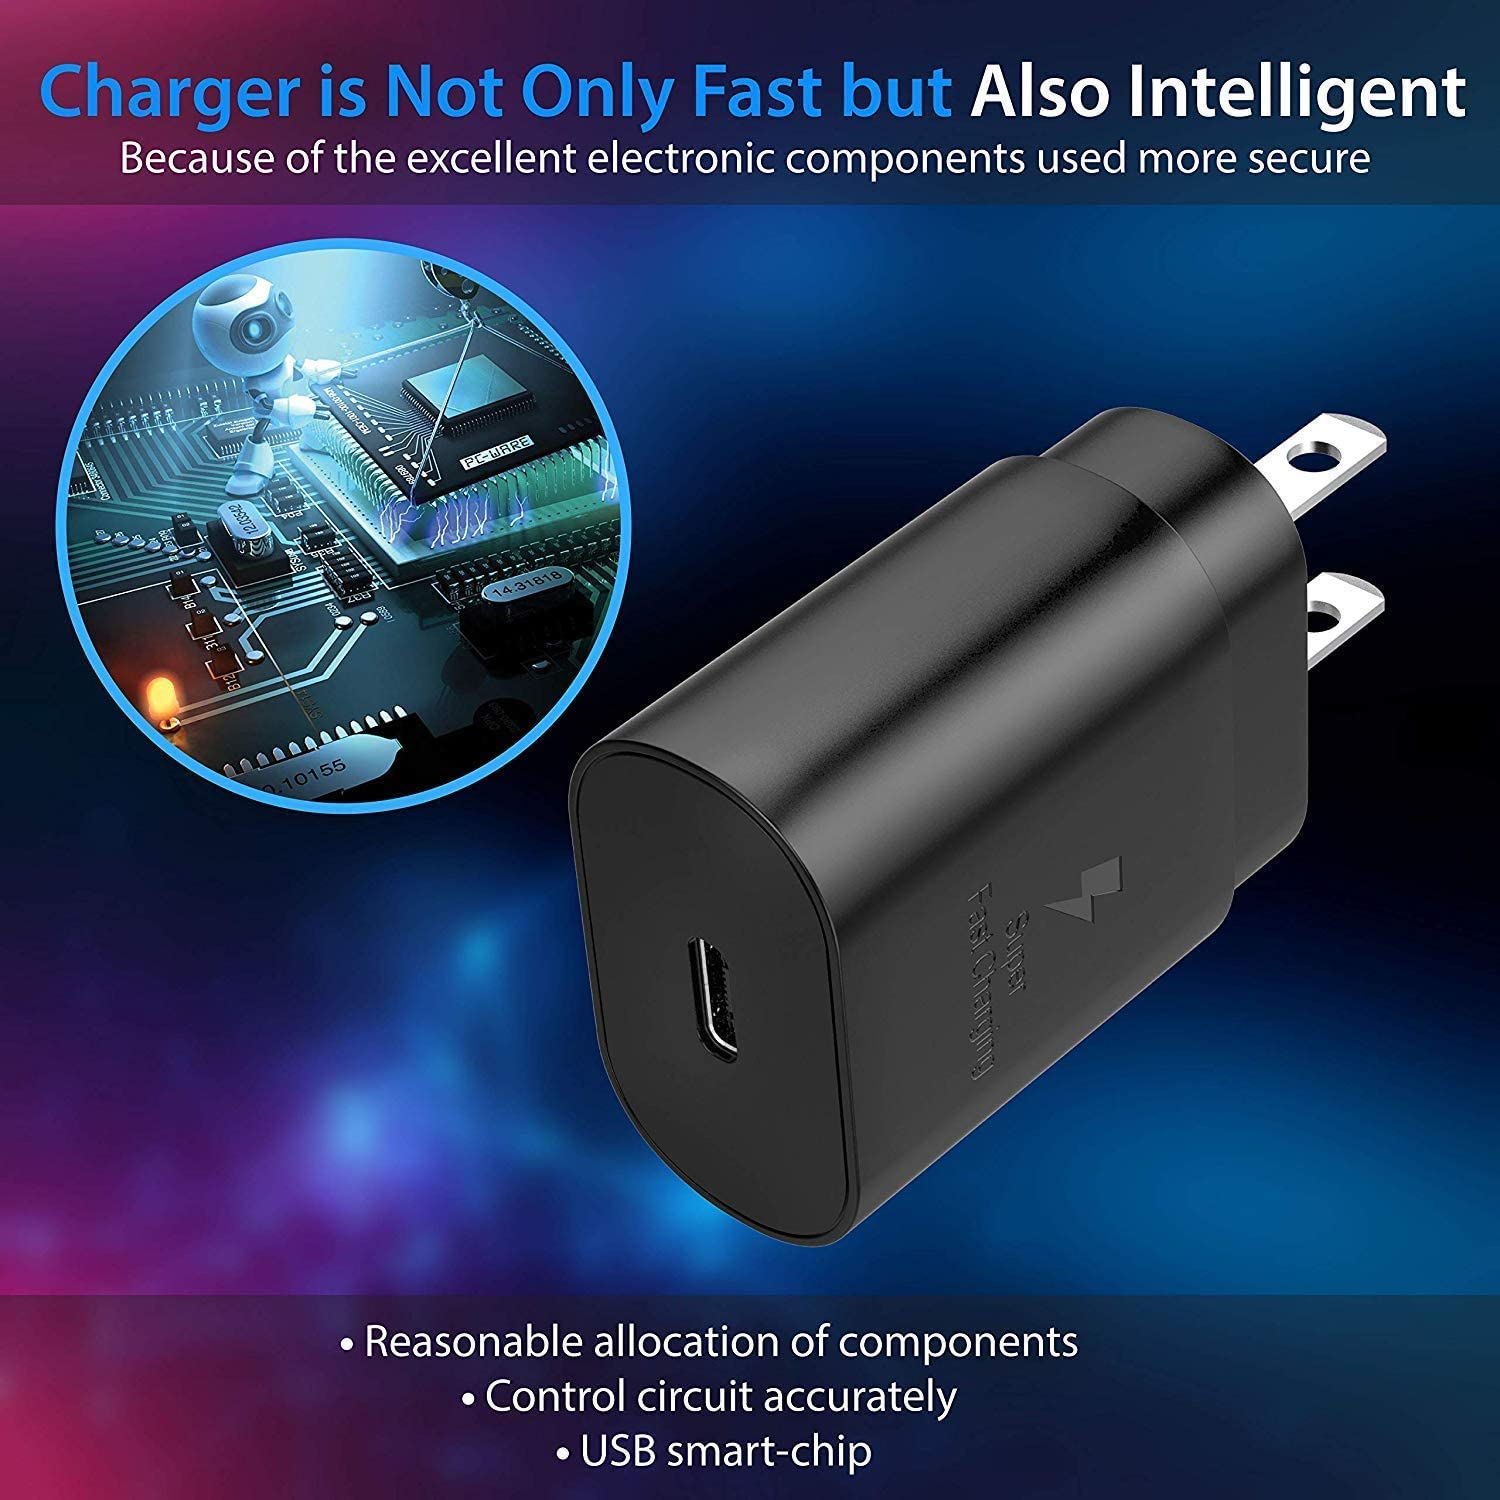 S9 Note 9 Note 10 Plus Compatible for S8 TT/&C 25 Watt PD 3.0 USB C Wall Charger Fast Charging for Samsung Galaxy Note 10 iPad Pro 11//12.9 Galaxy S10 5G Note 8 S10